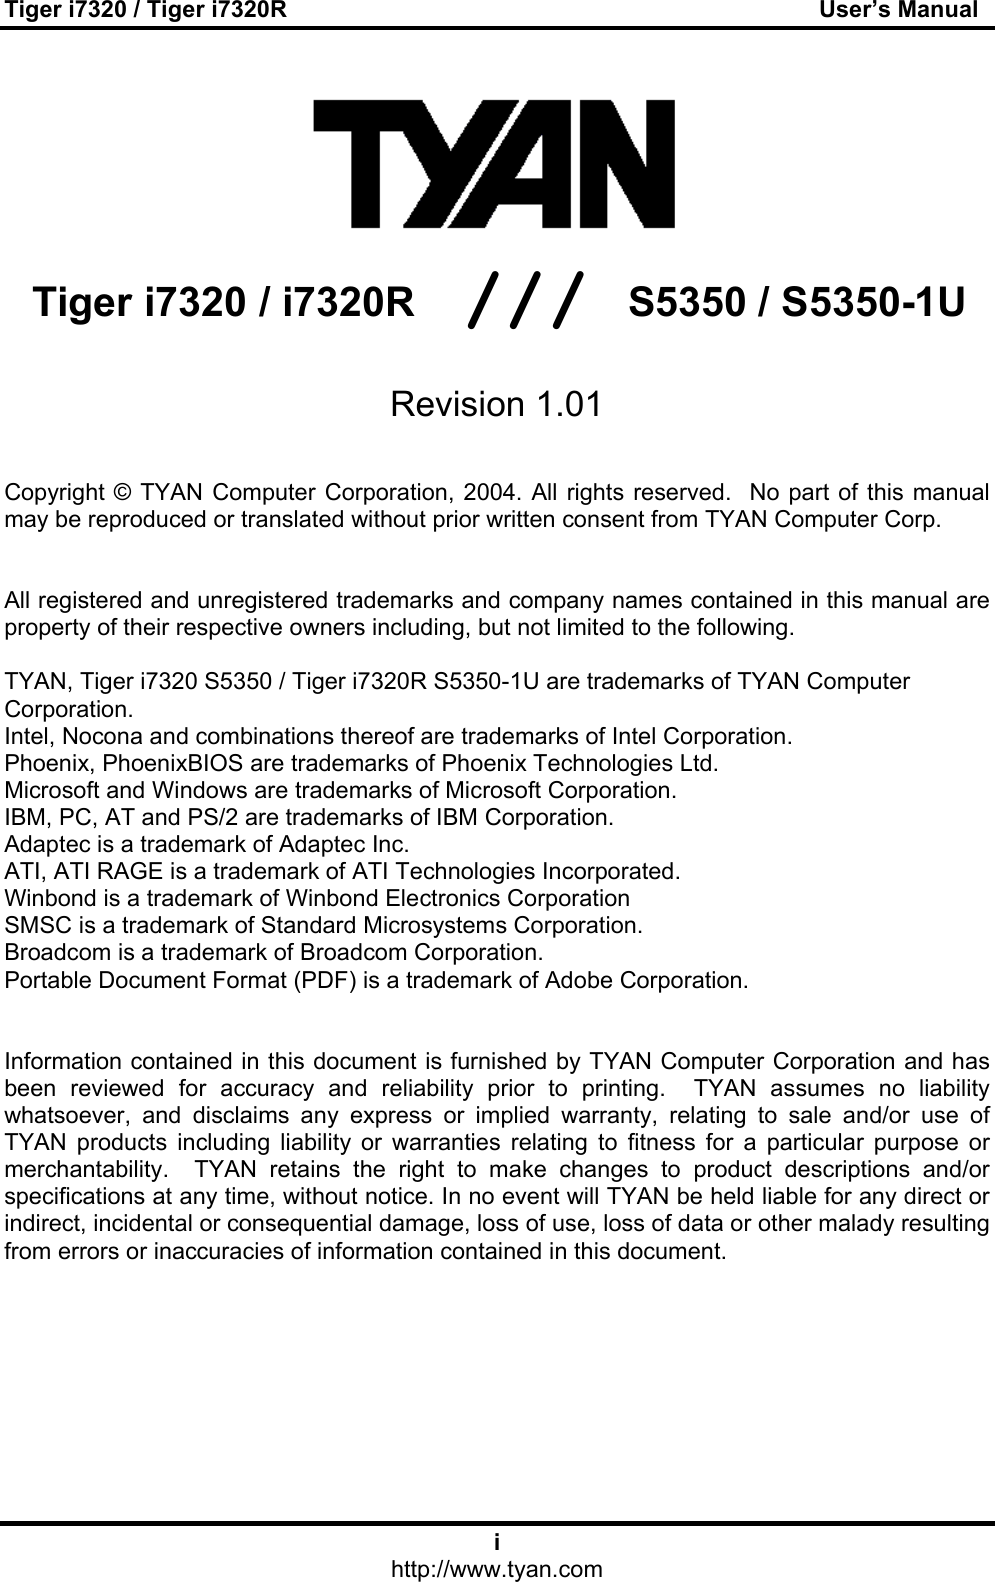 TYAN TIGER 5350 WINDOWS 7 DRIVERS DOWNLOAD (2019)